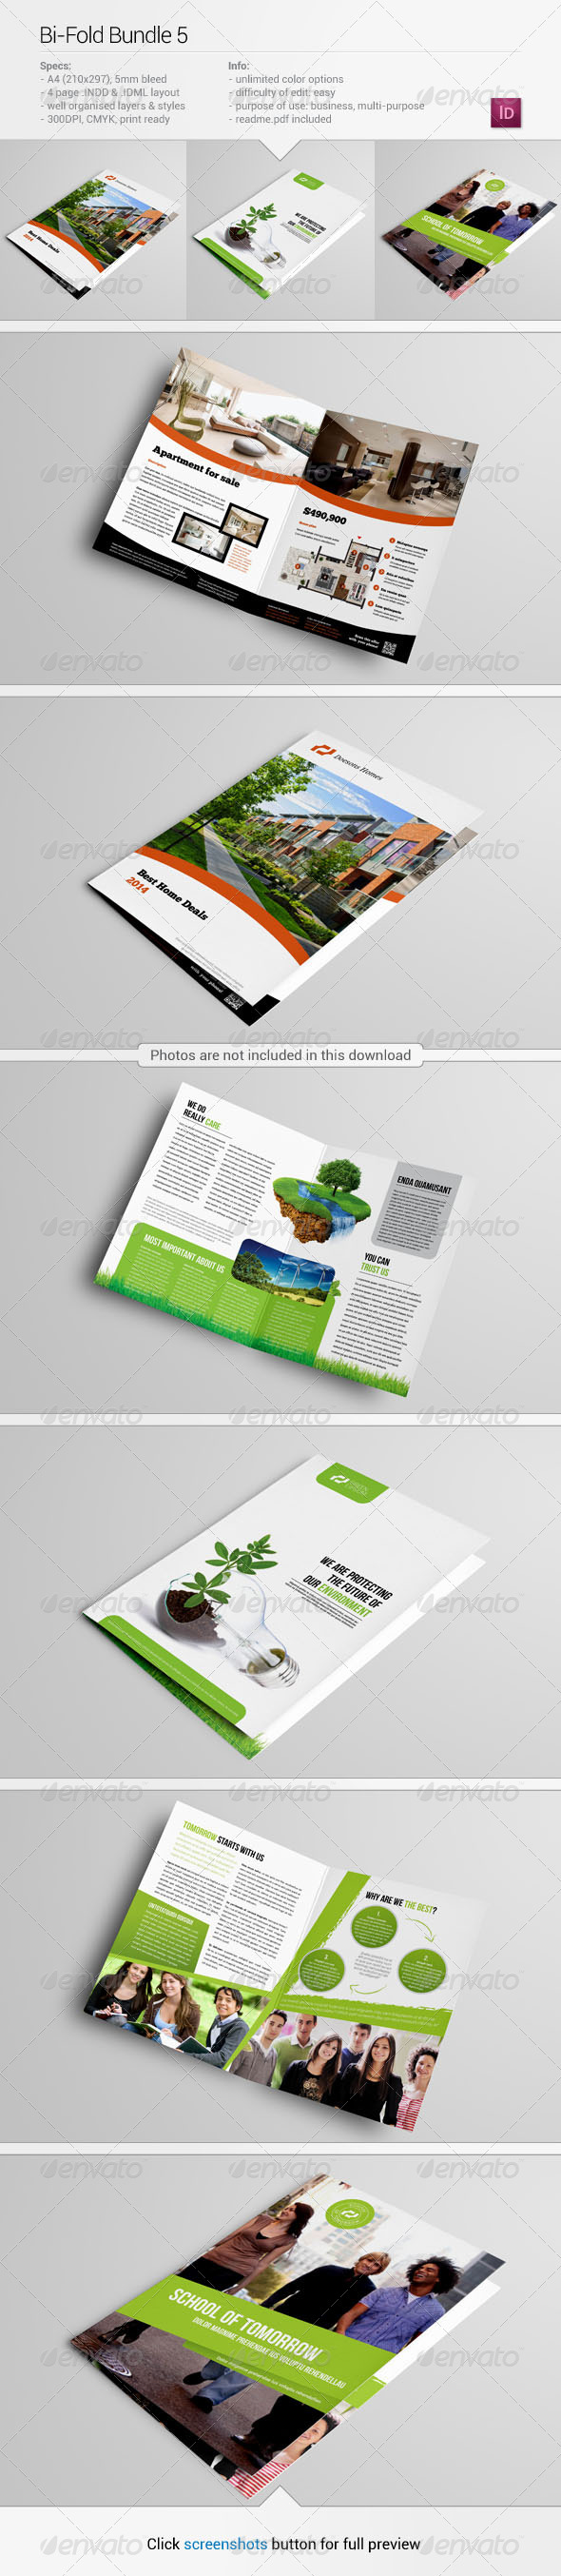 GraphicRiver Bi-Fold Bundle 5 5889781